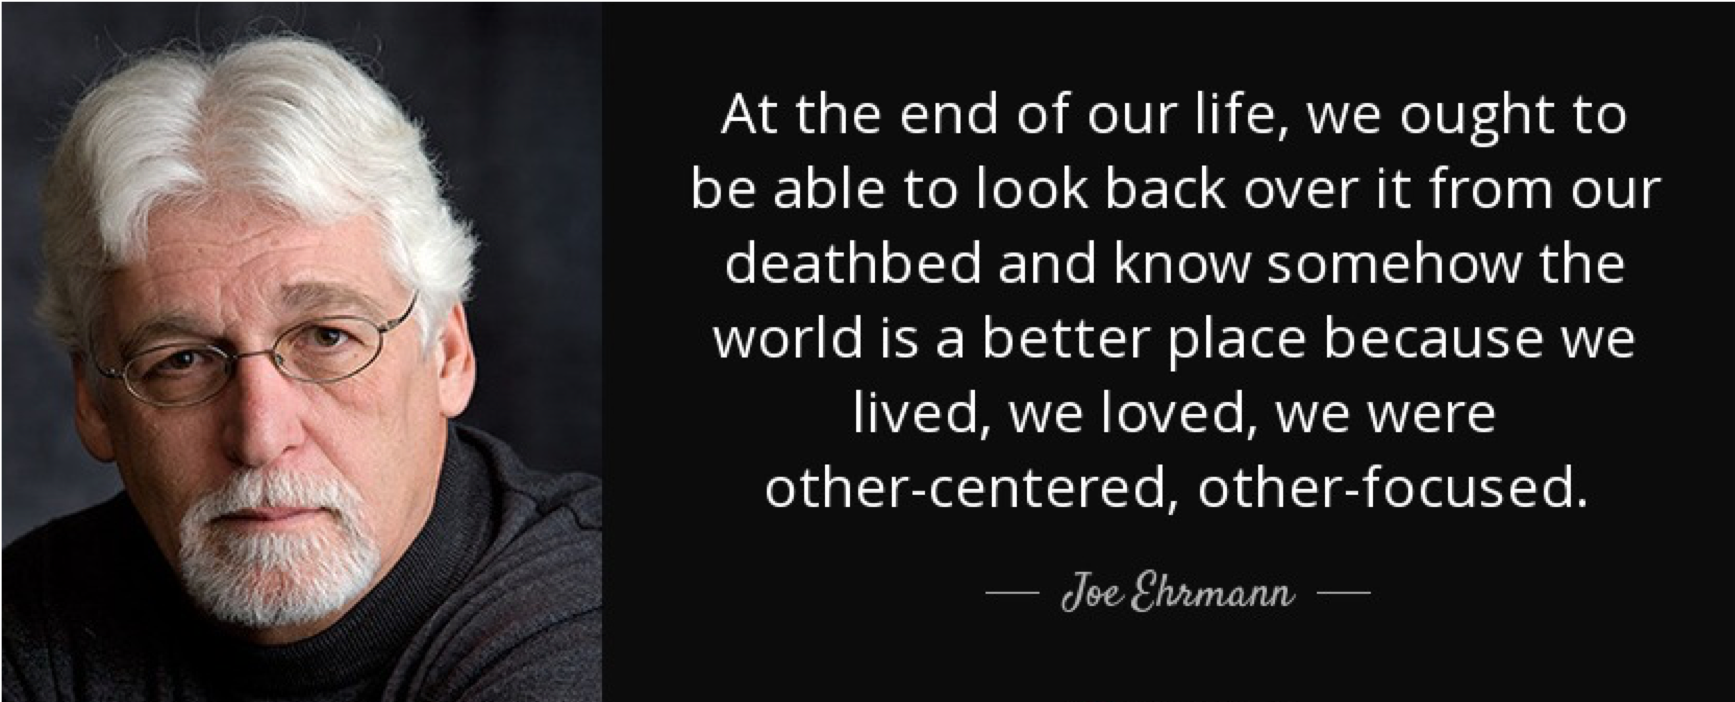 Joe Ehrmann quote pic 1801a.png